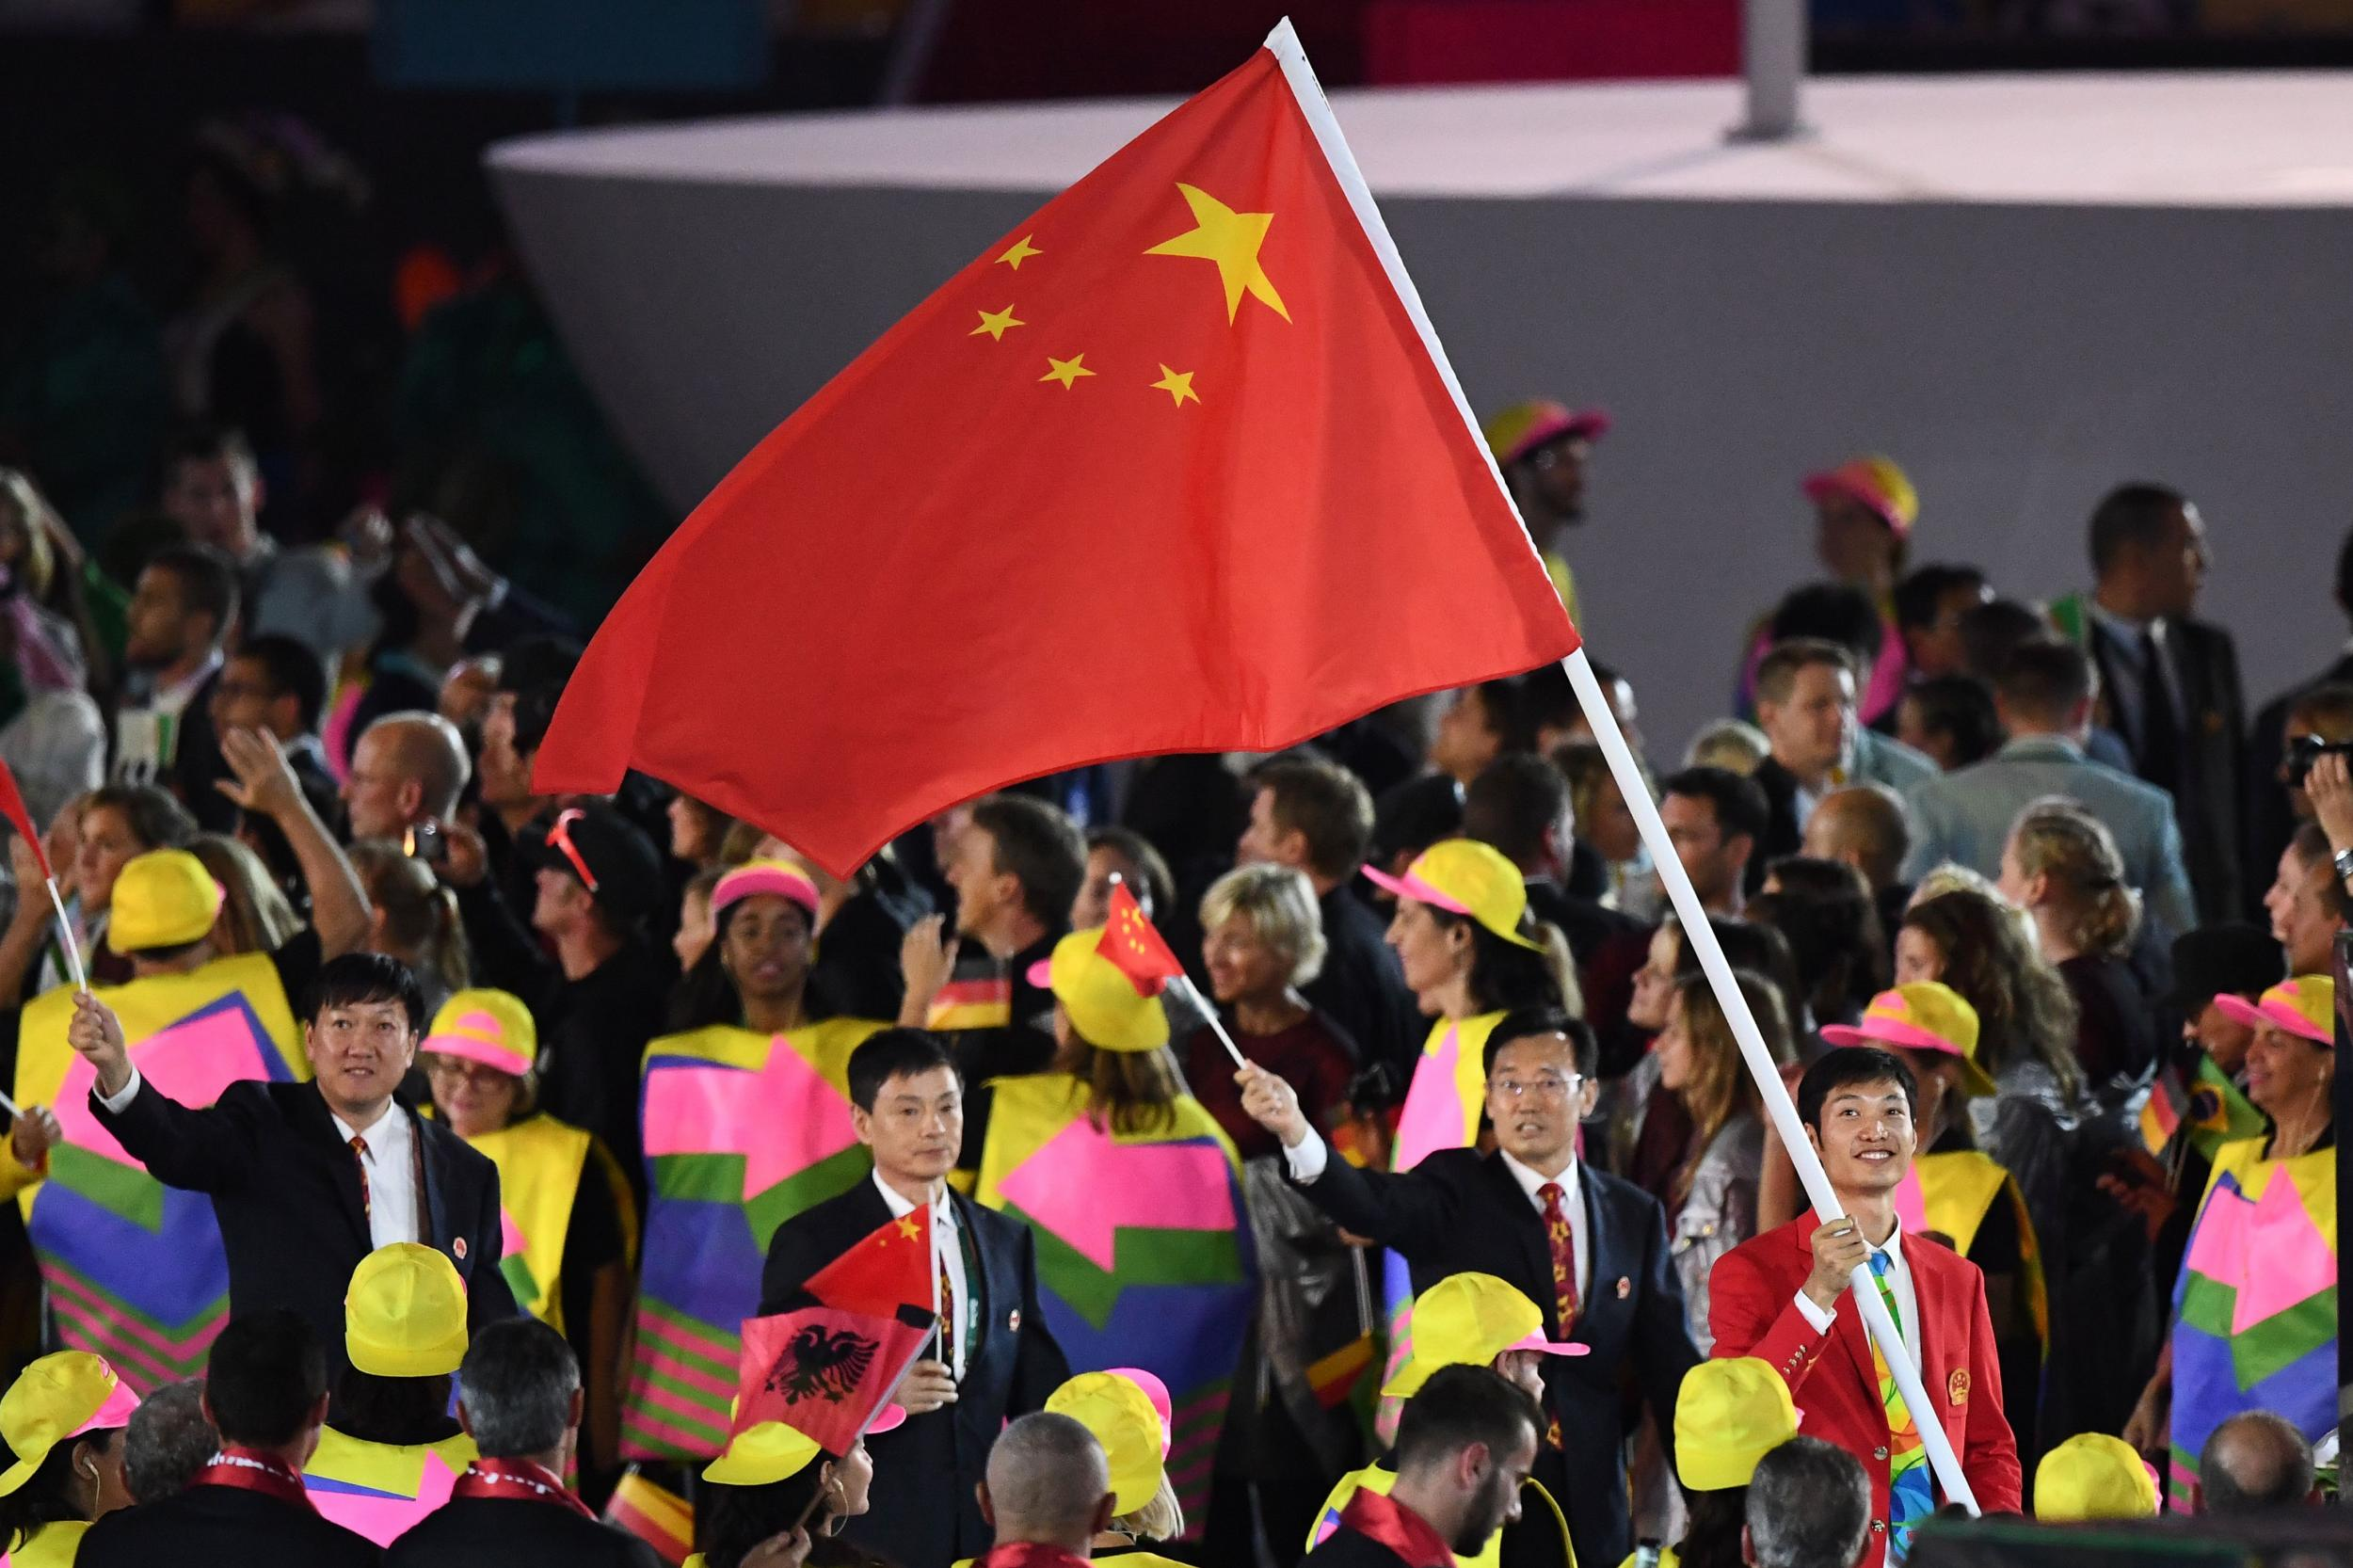 rio 2016 wrong chinese flag used in medal ceremonies the